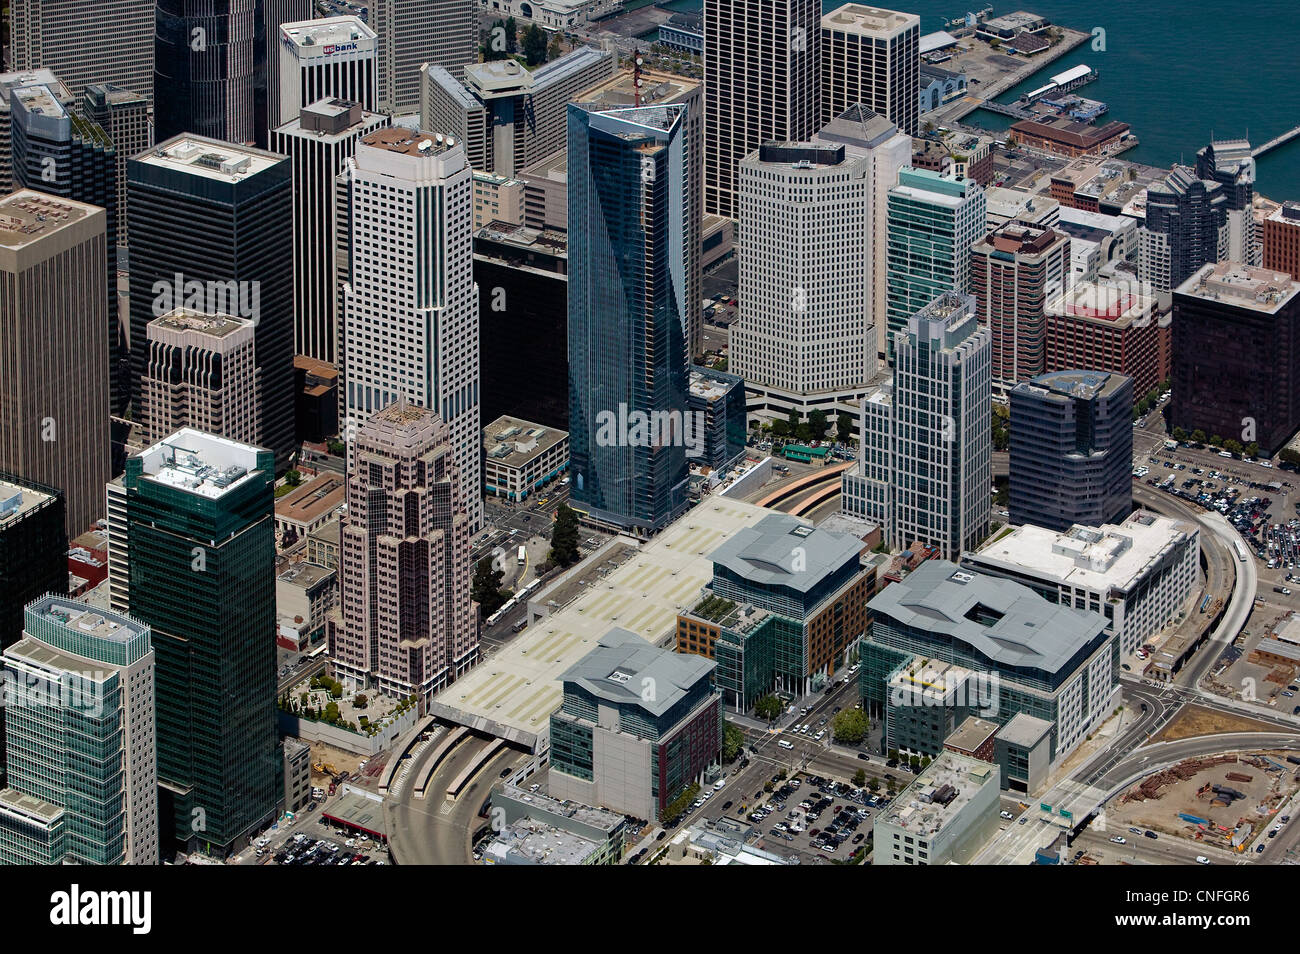 aerial photograph, Millenium tower, Spear Street Towers, Foundry Square, skyscrapers San Francisco California, - Stock Image